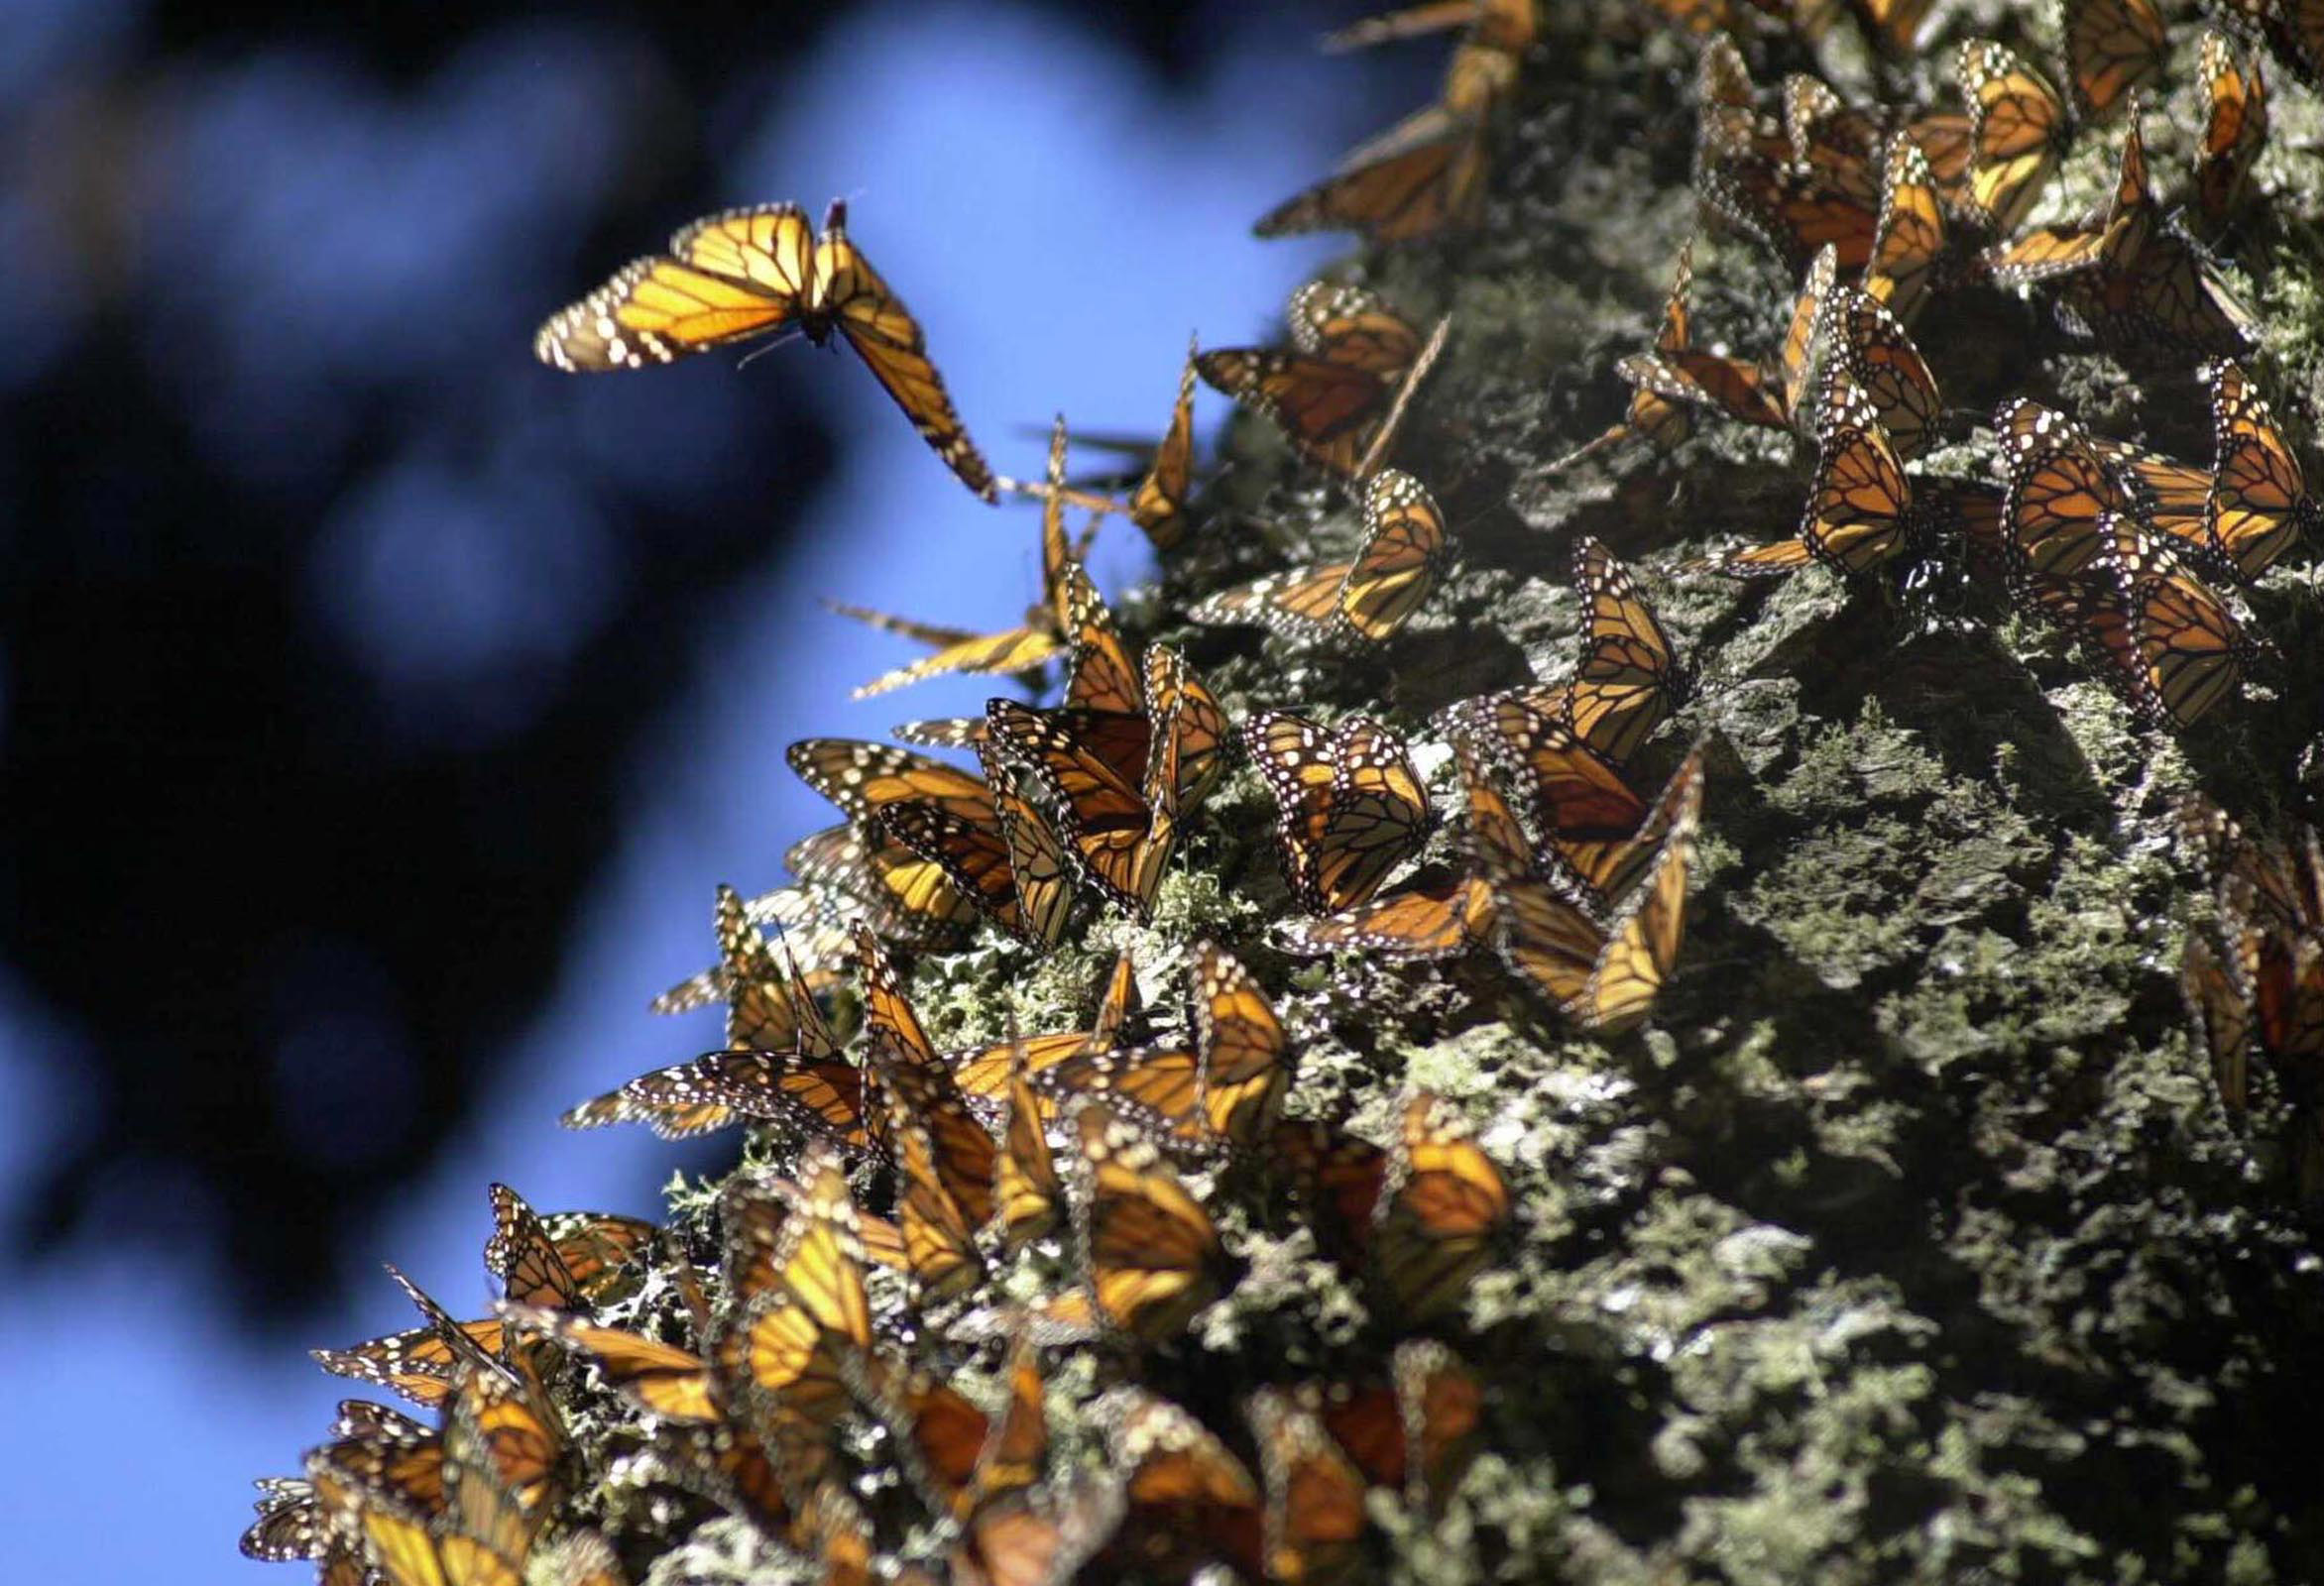 In Central Mexico, Climate Change Poses a Threat to the Treasured Monarch Butterflies